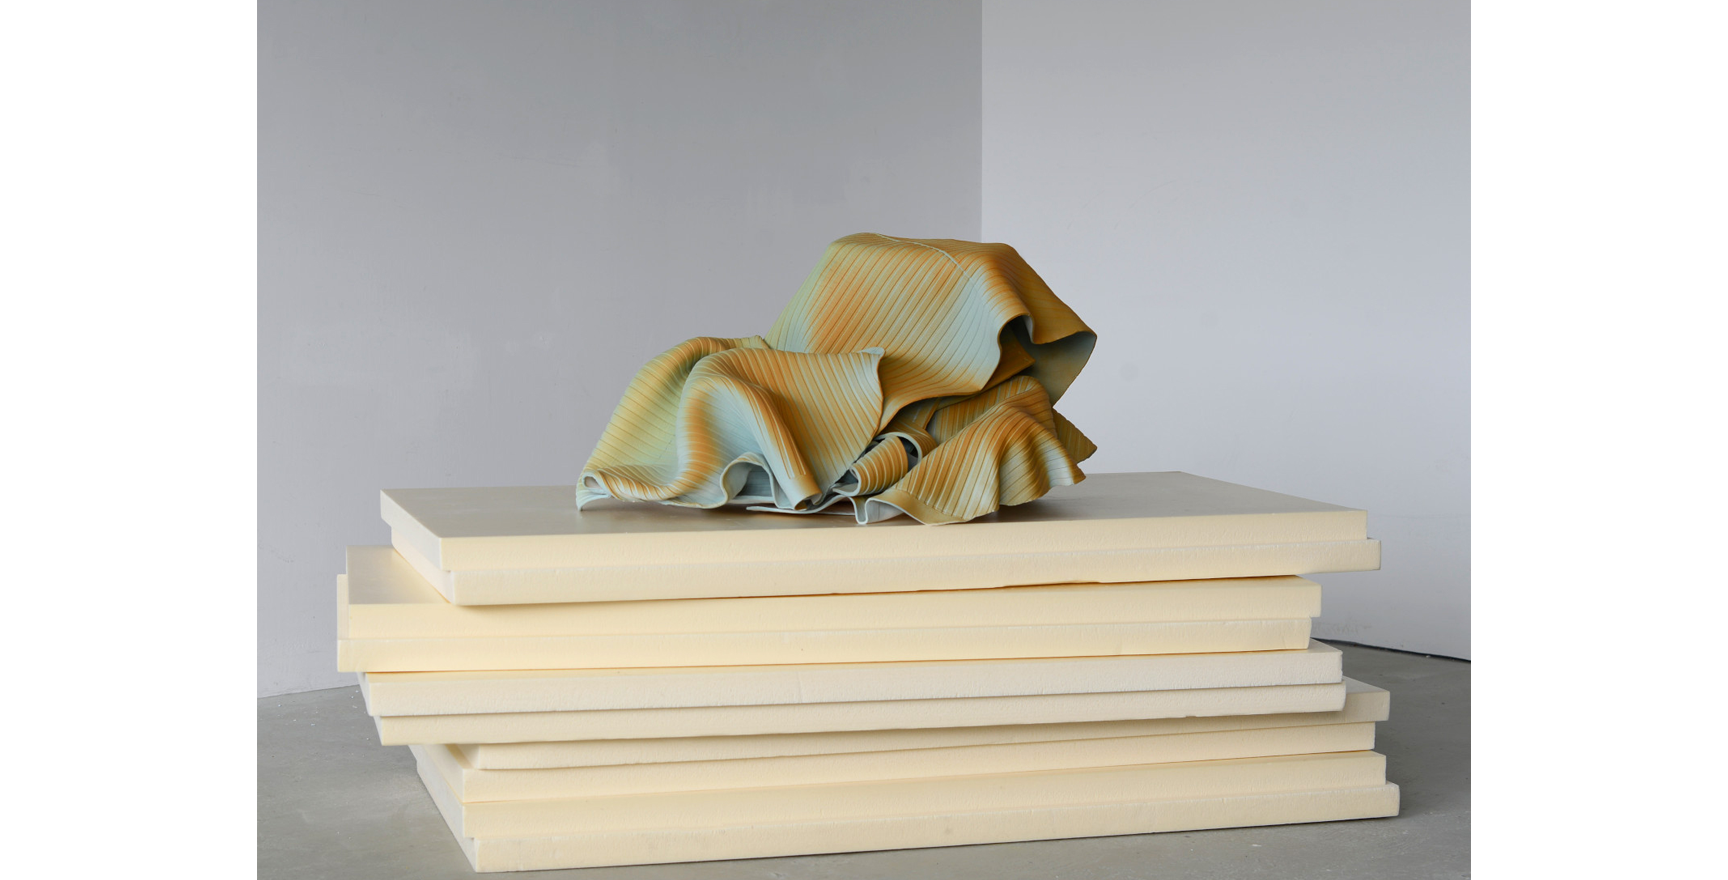 Vera Kox, Resting assured (shedding), 2020, ceramica, pannelli isolanti, 80x126x61cm